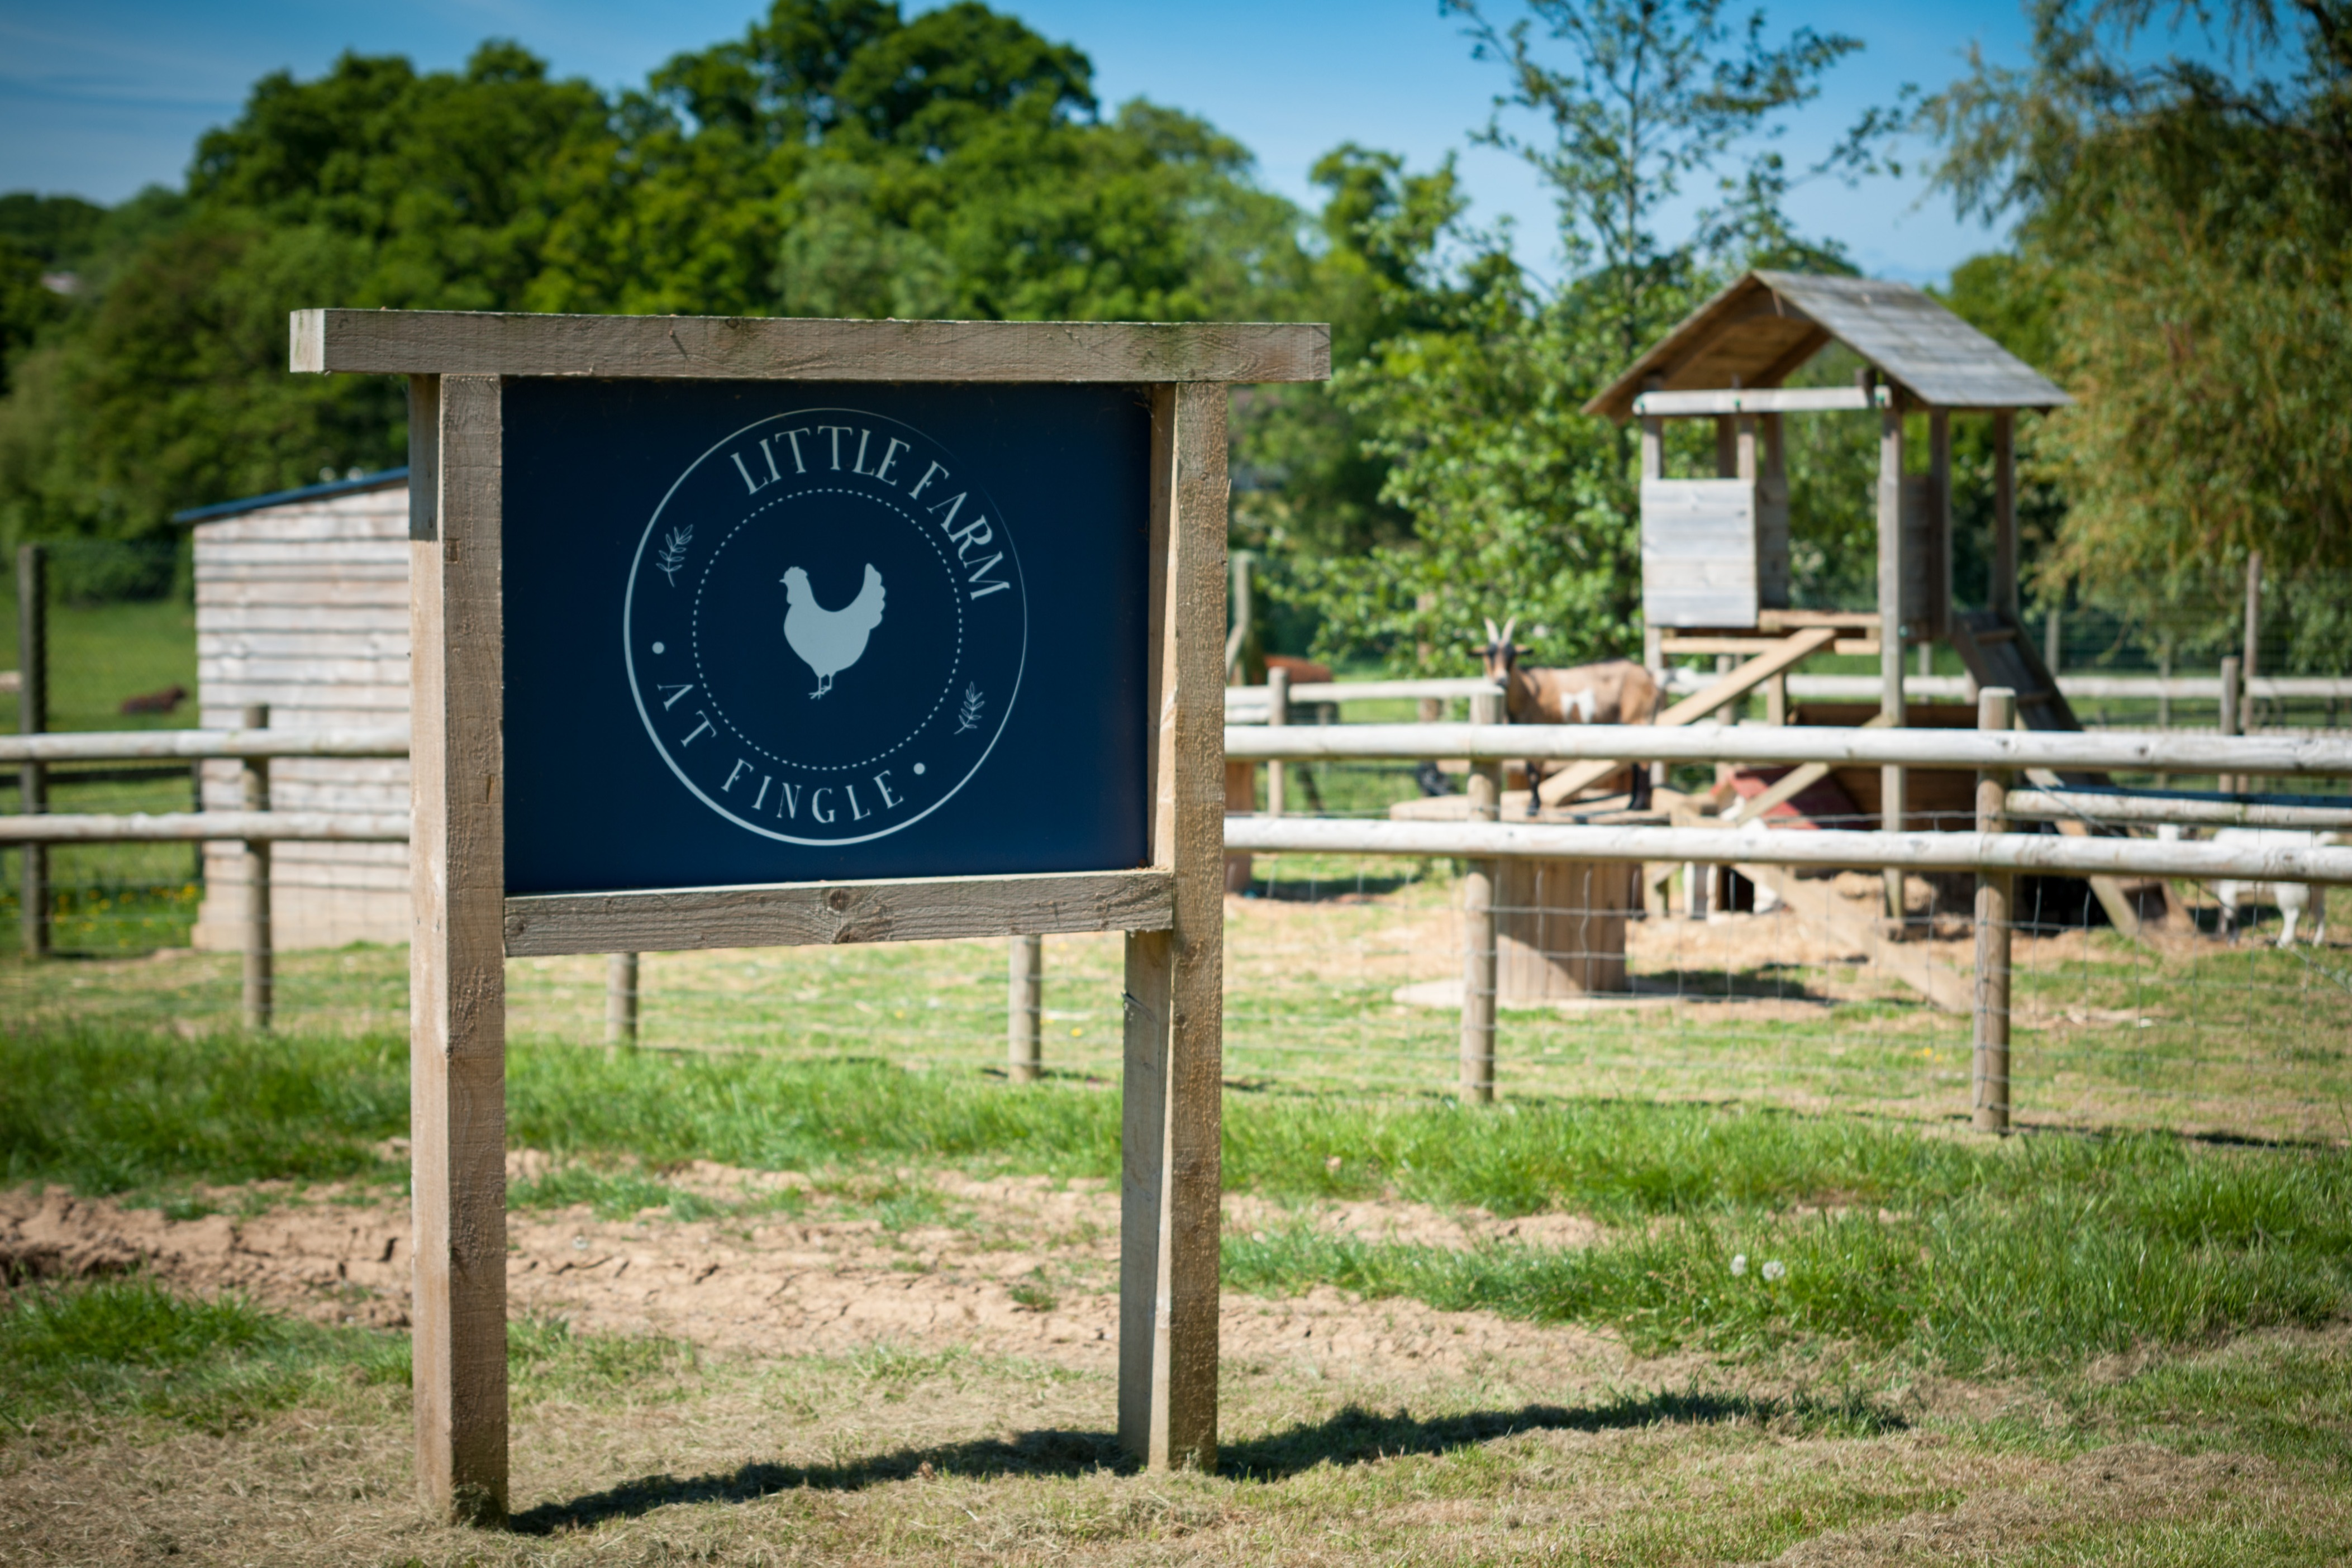 Come and feed the animals at Little Farm